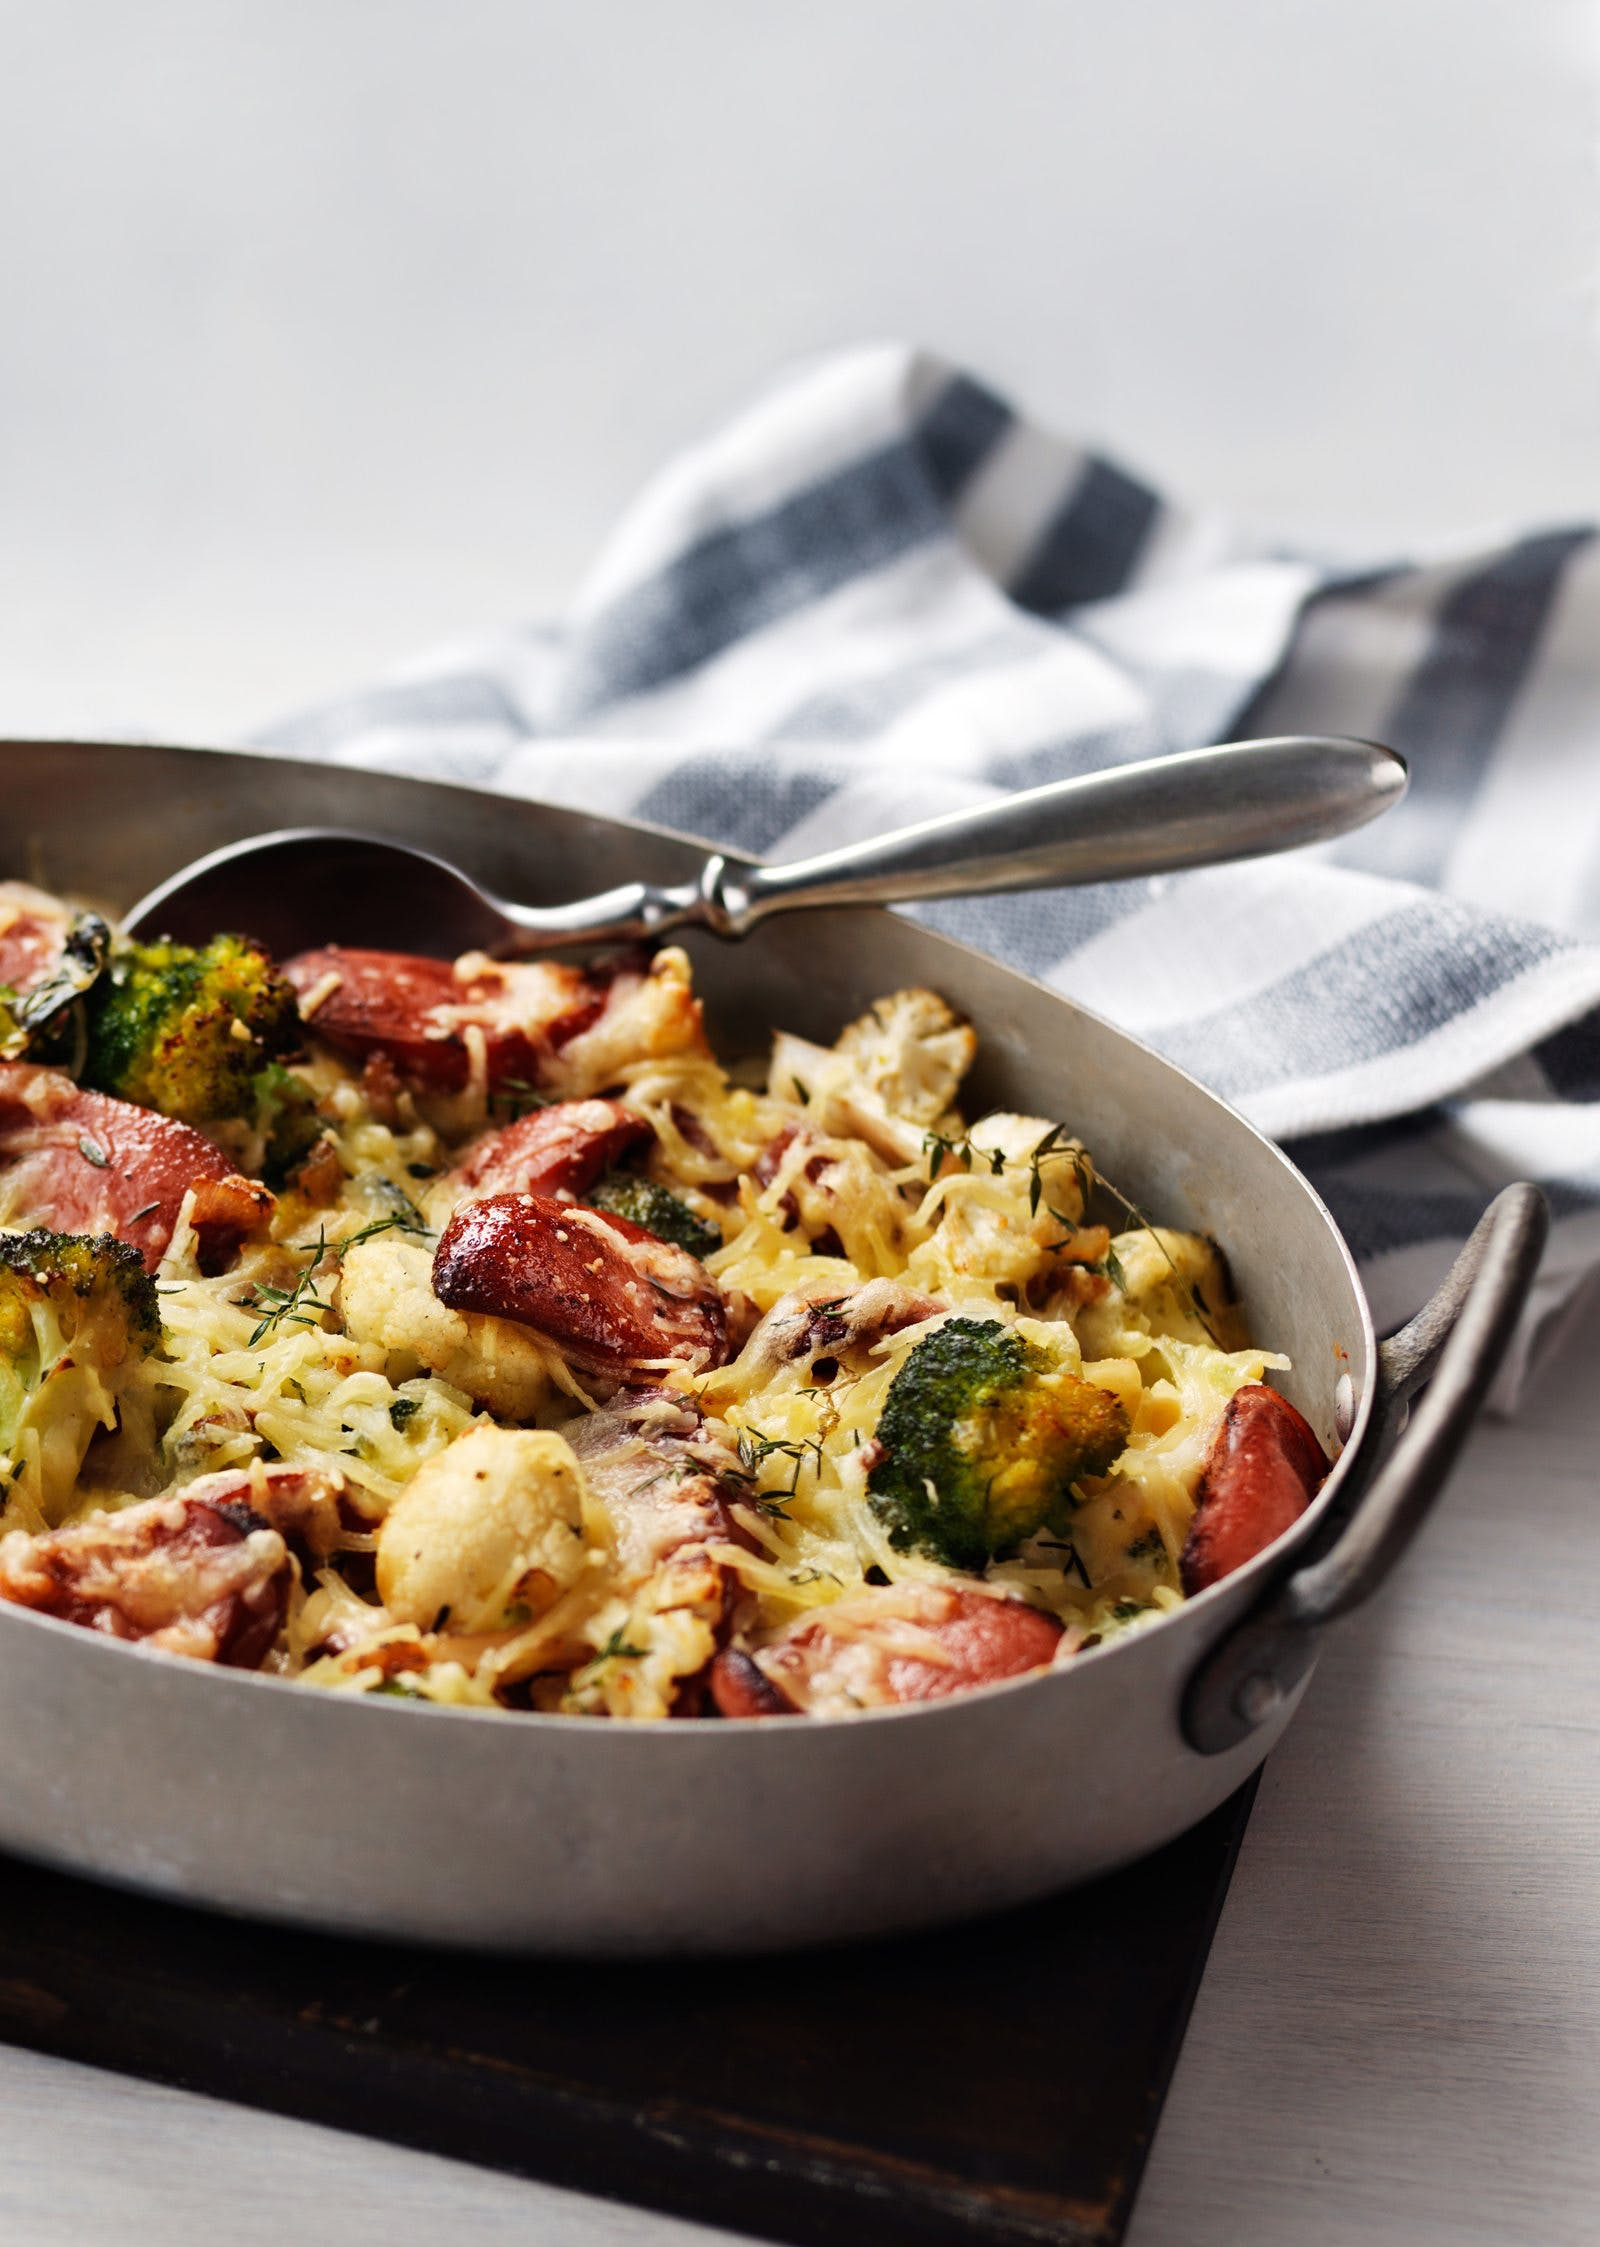 Broccoli and cauliflower gratin with sausage